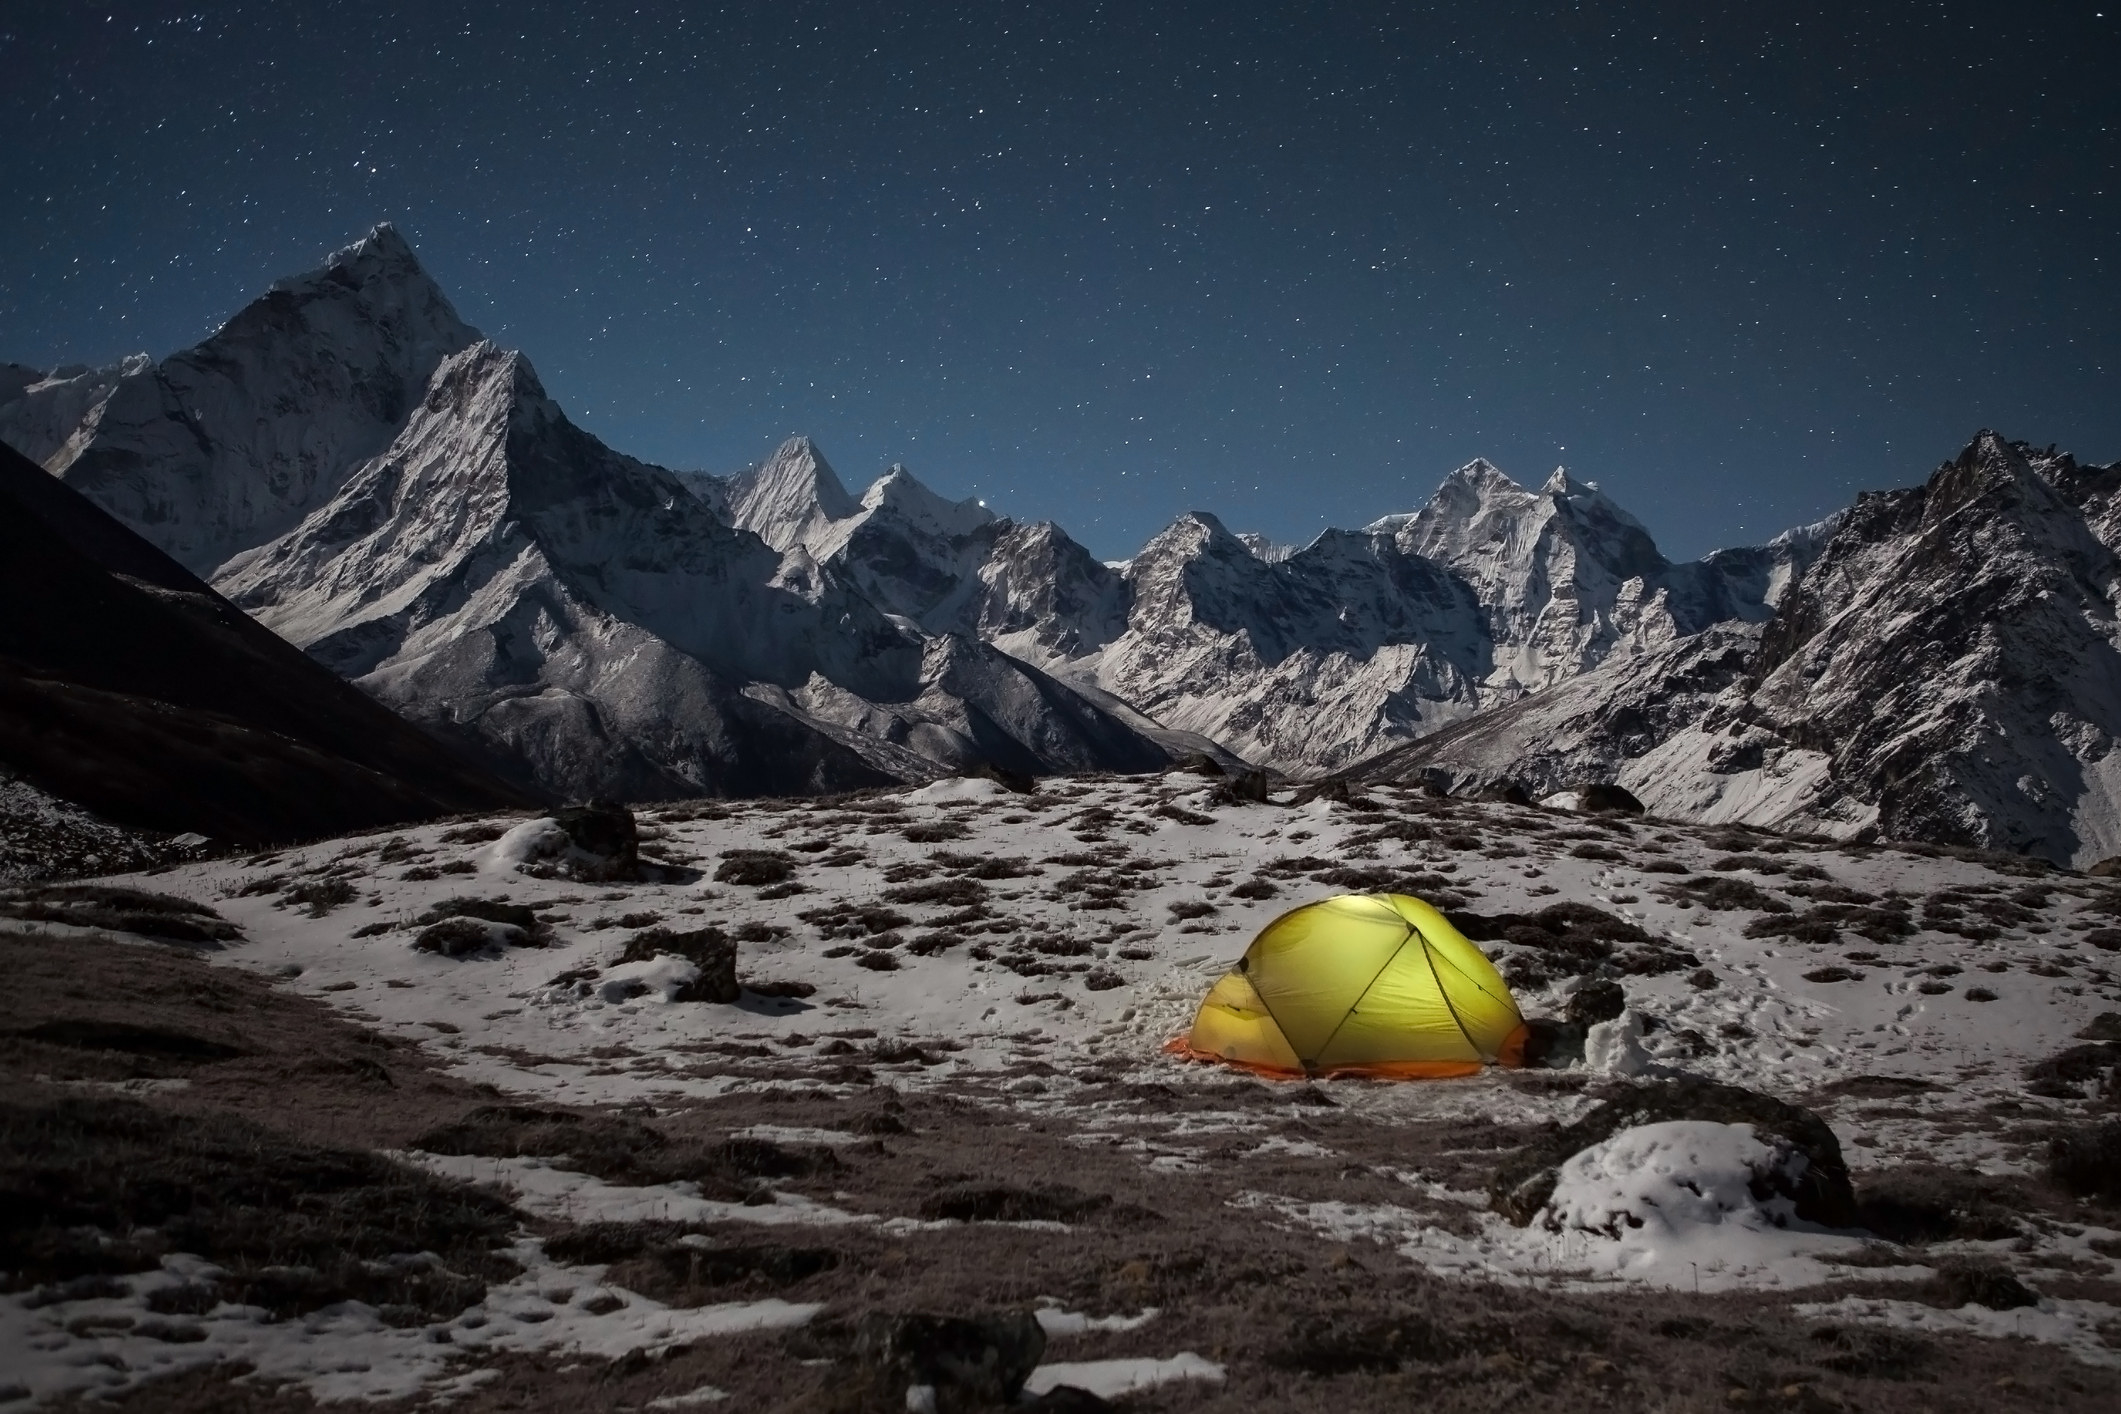 A glowing tent set up under a starry sky, surrounded by snowy mountains